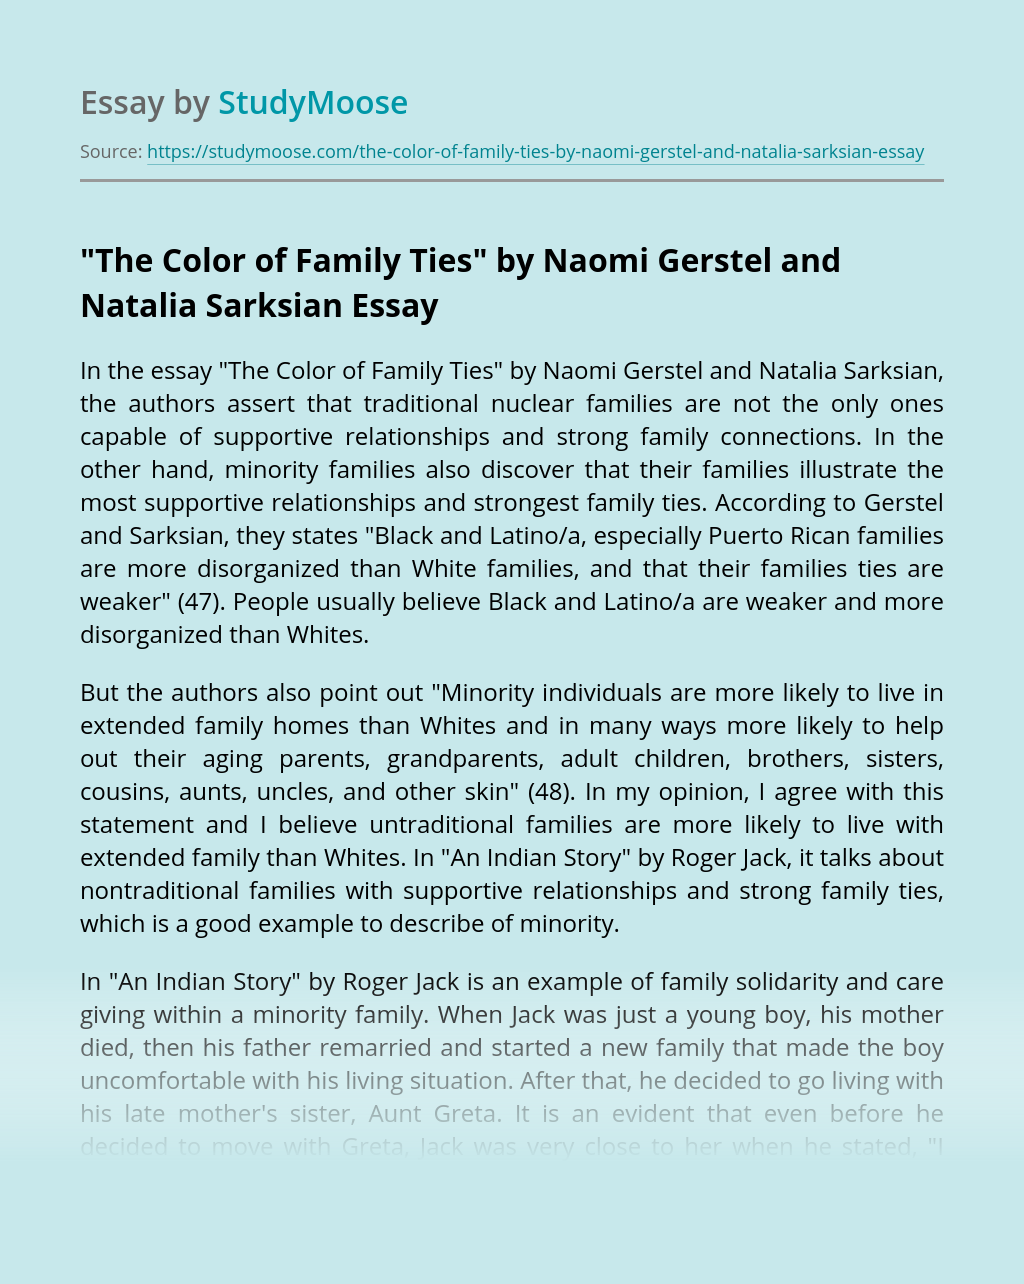 """The Color of Family Ties"" by Naomi Gerstel and Natalia Sarksian"